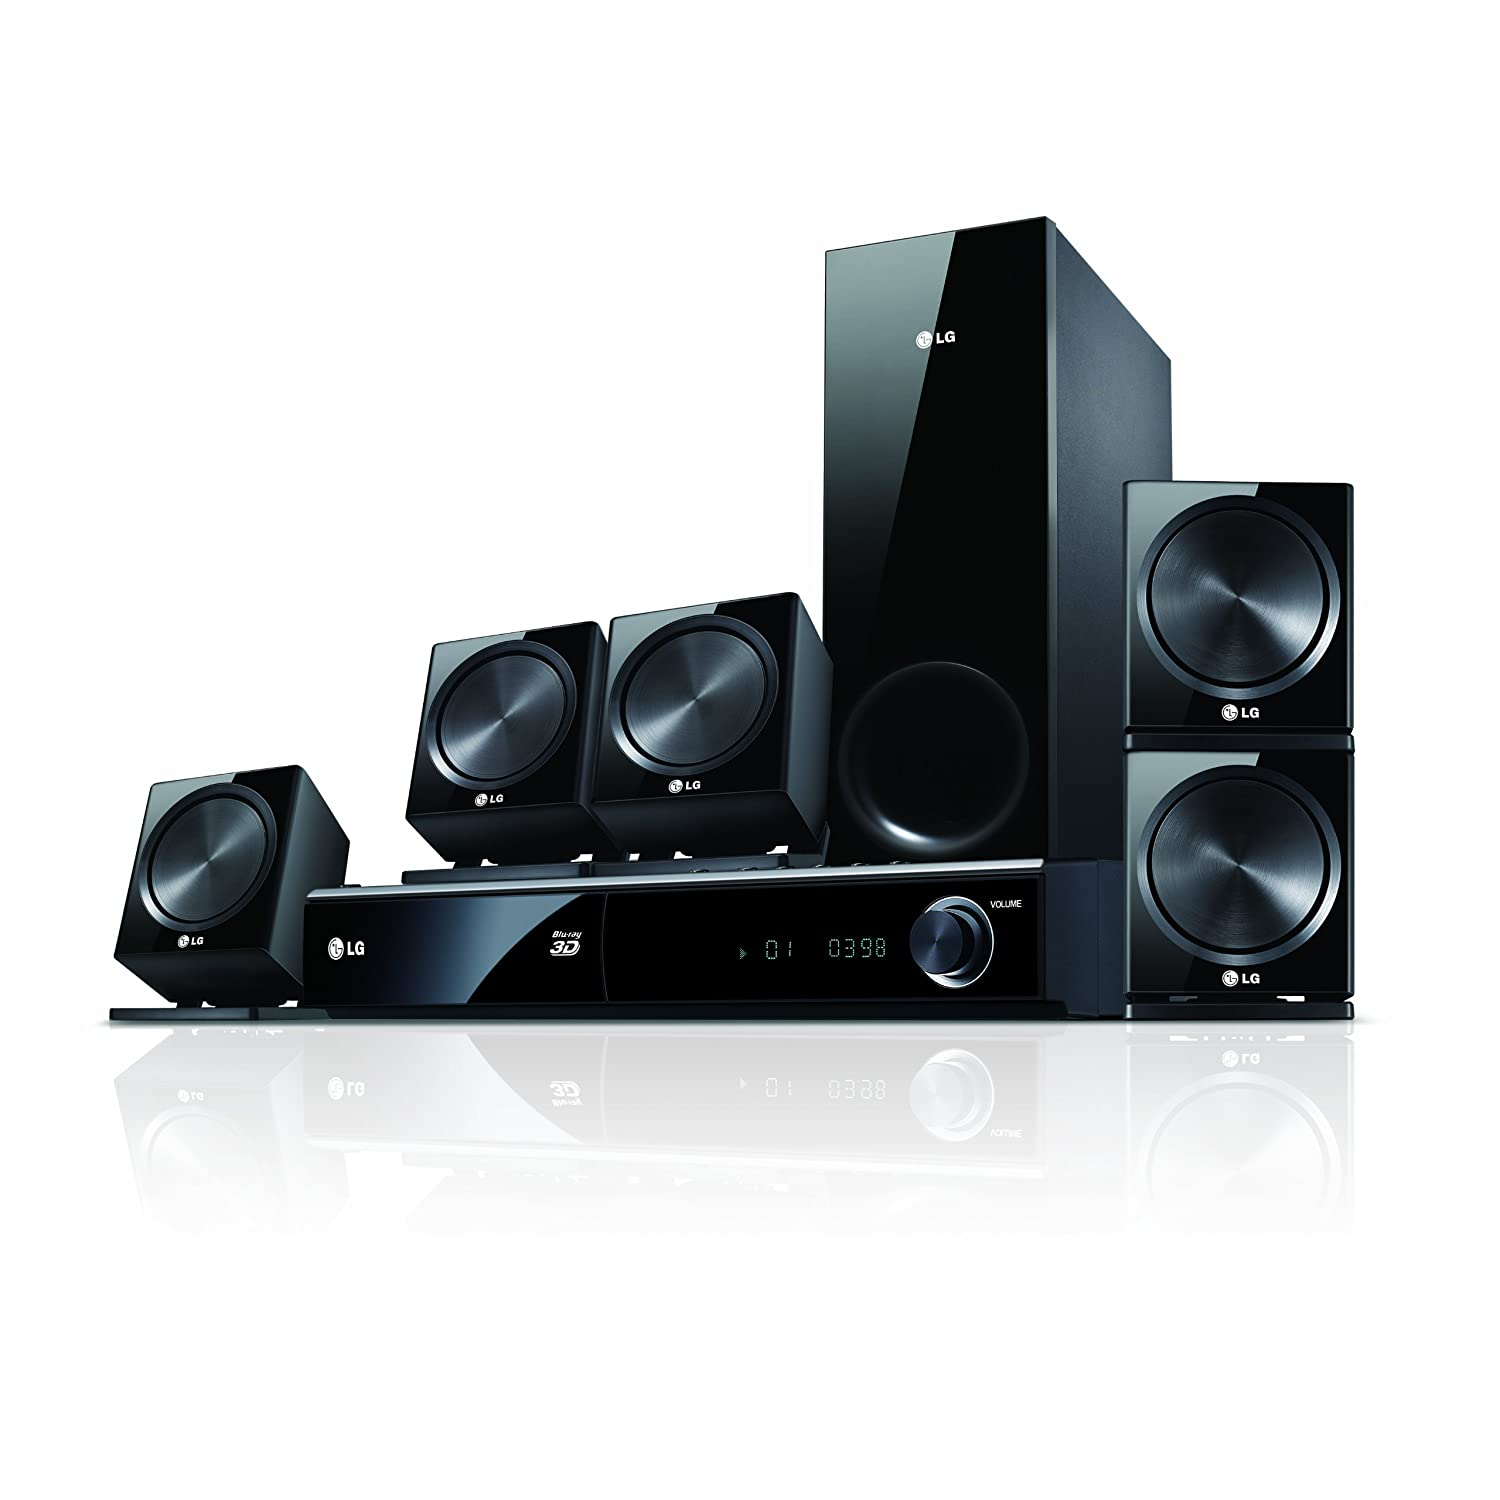 Rca 5 Disc Home Theater